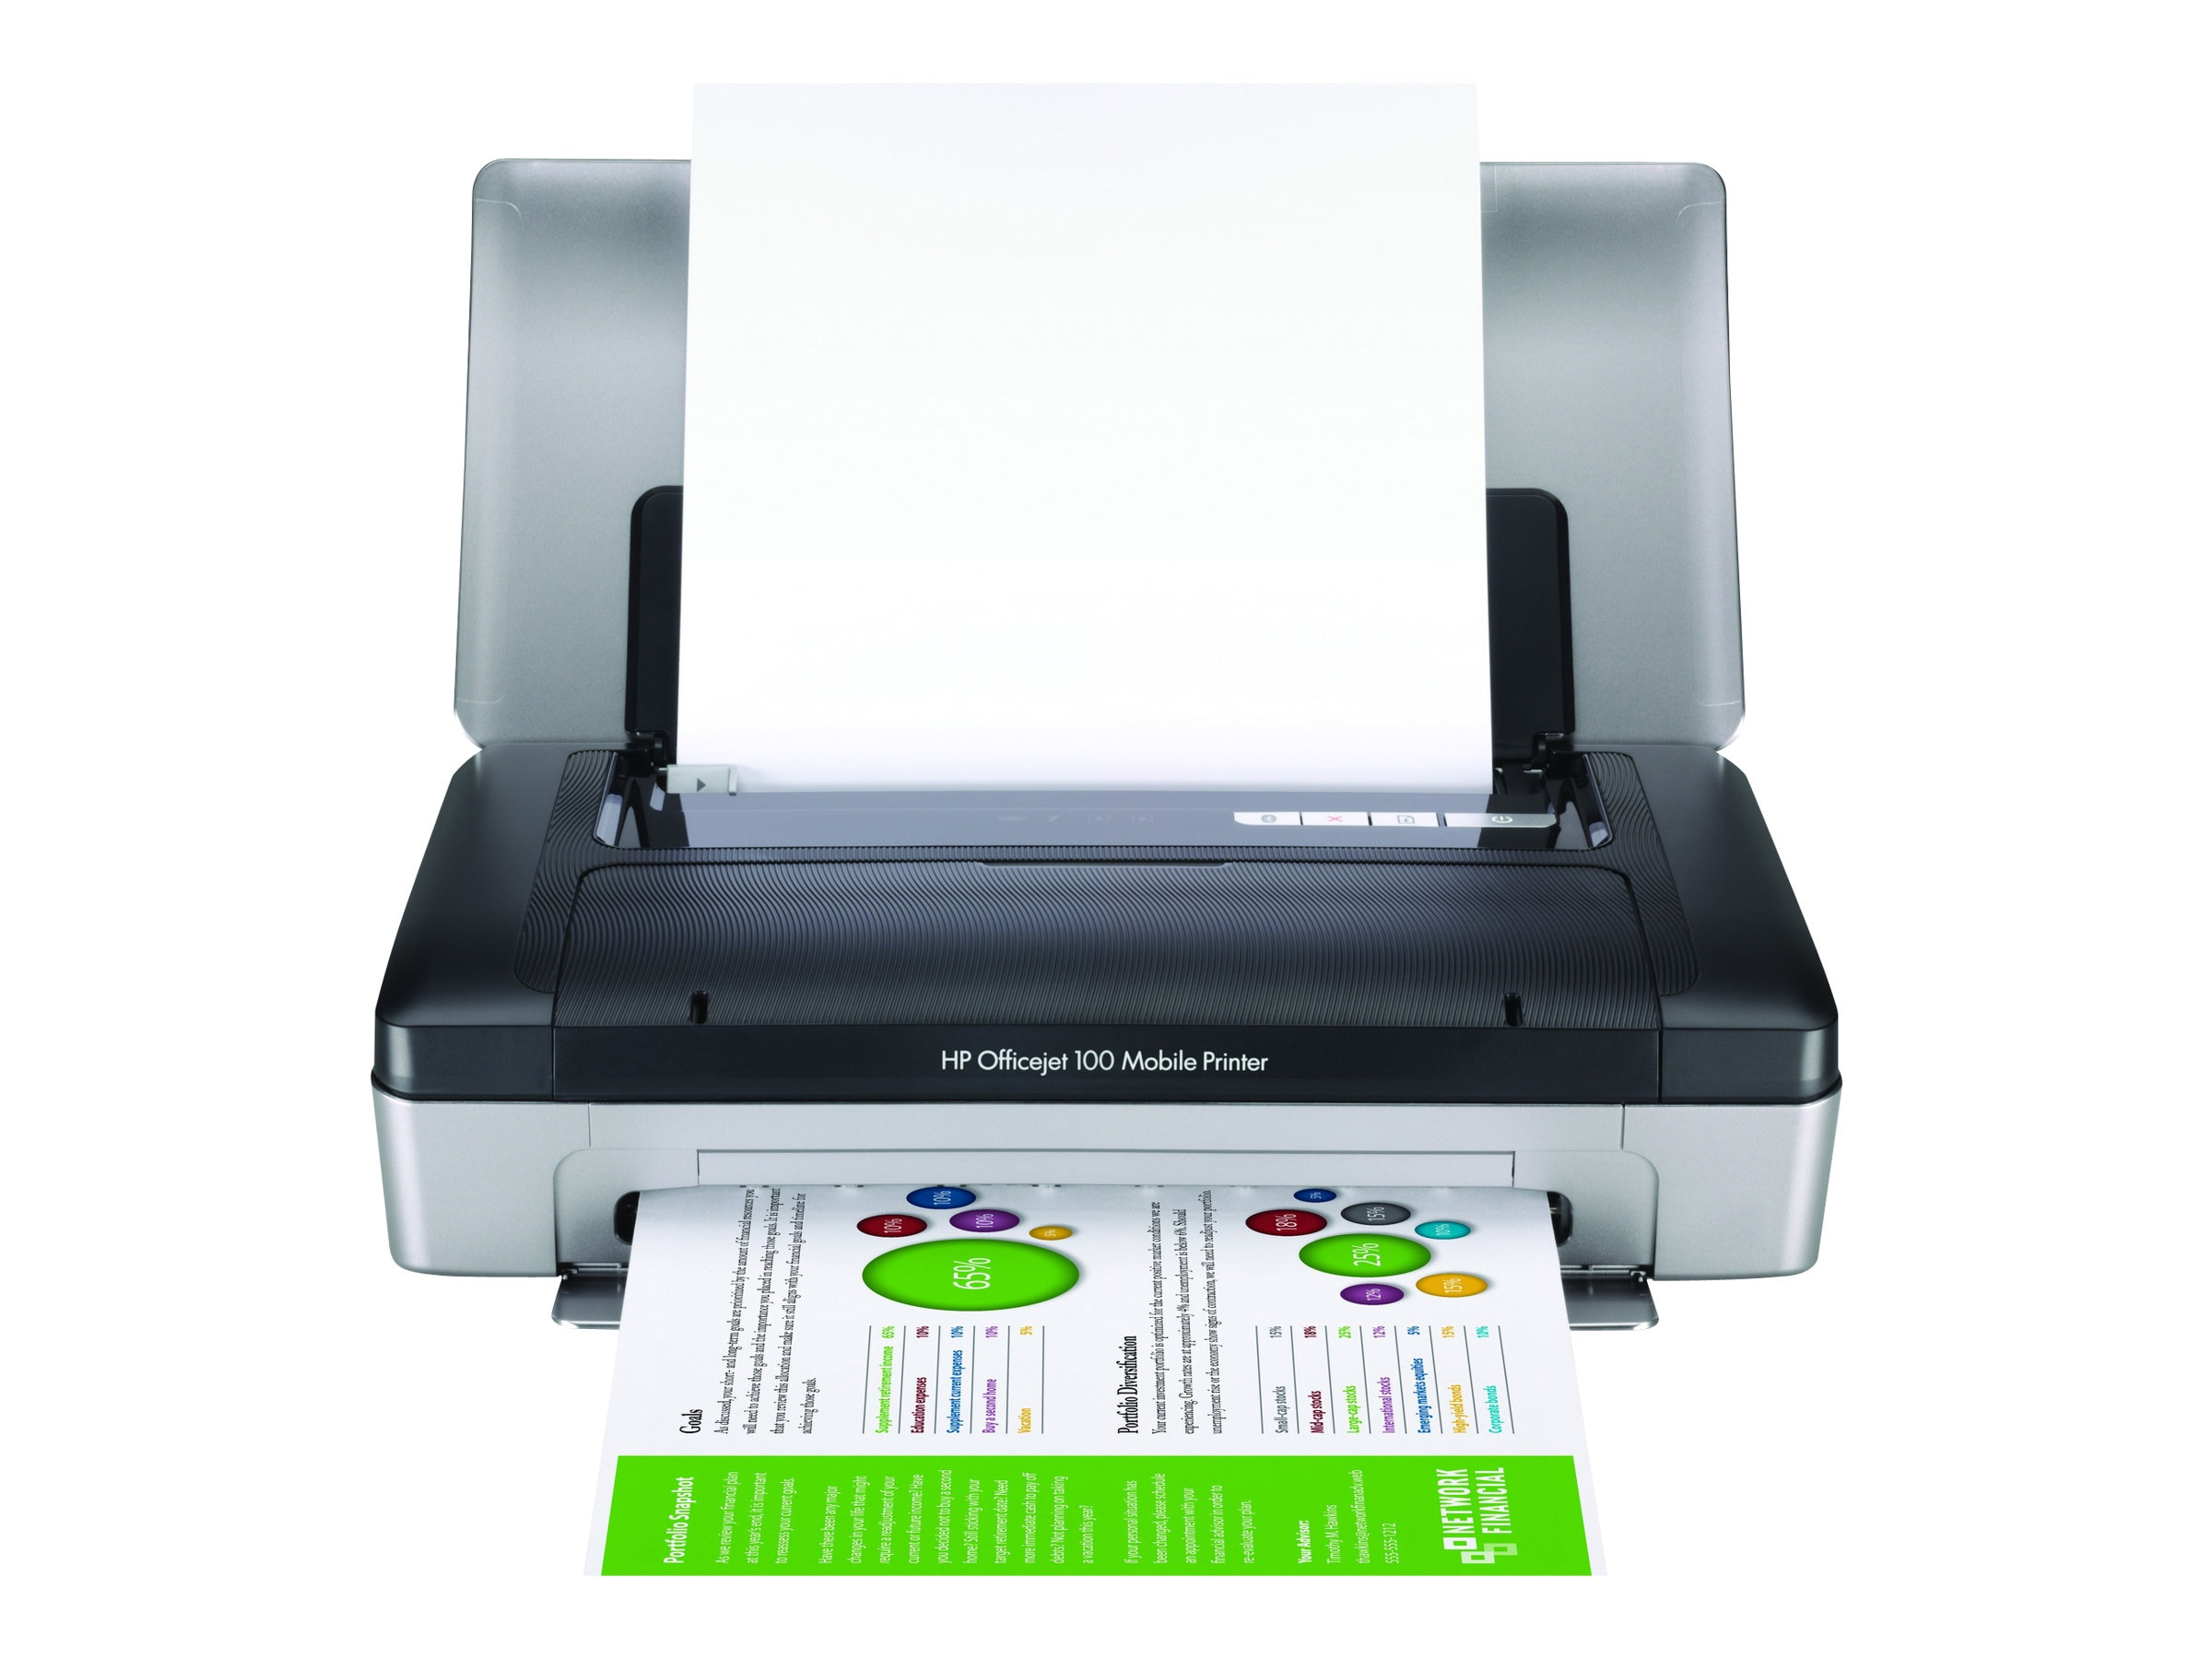 HP Officejet 100 Mobile Printer ($279.95 - $80 Instant Rebate = $199.95 Expires 04 30 2016), CN551A#B1H